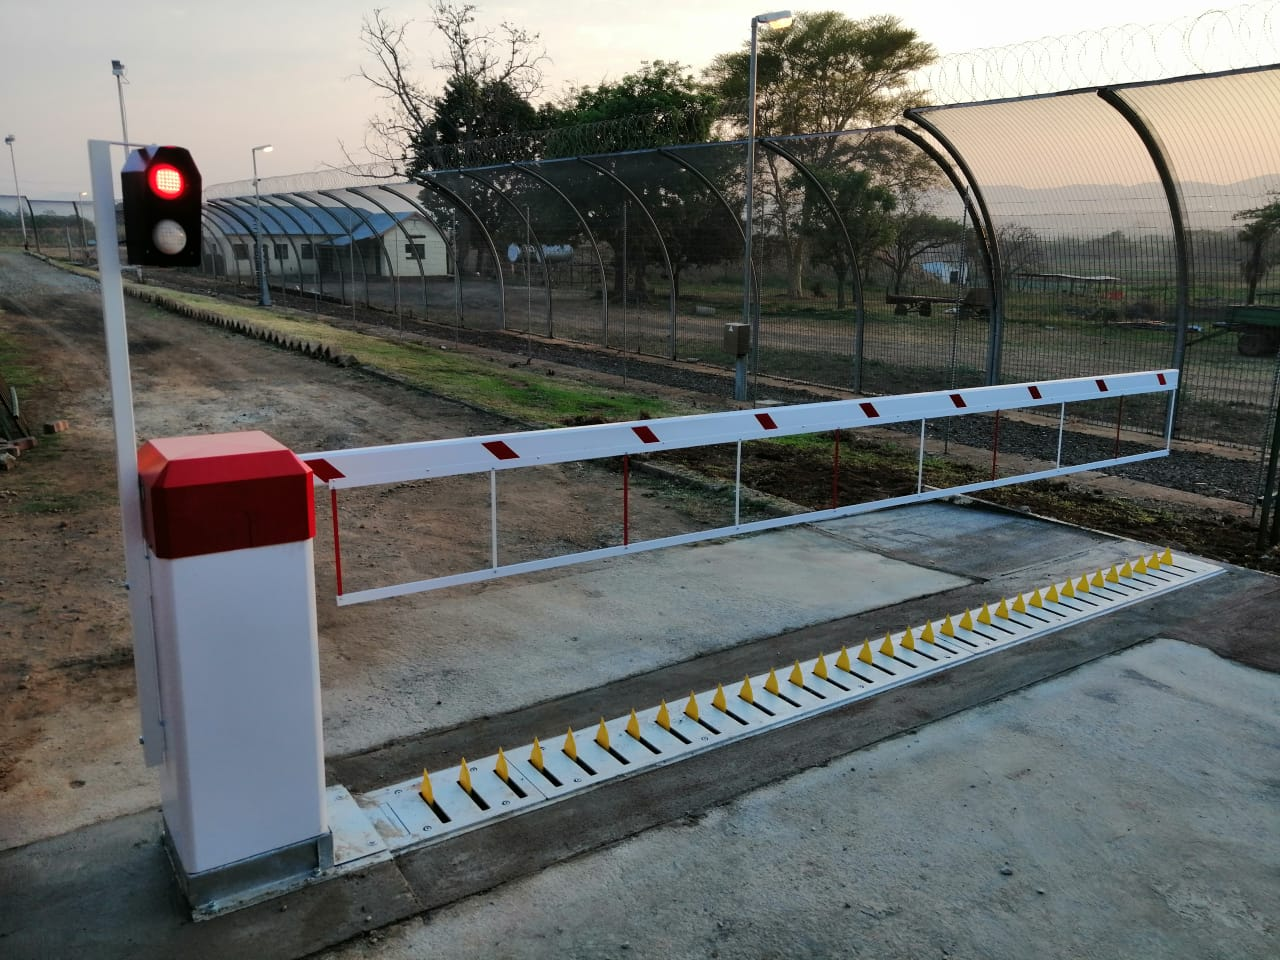 Boomgate Systems assists to secure the borders between South Africa and Lesotho